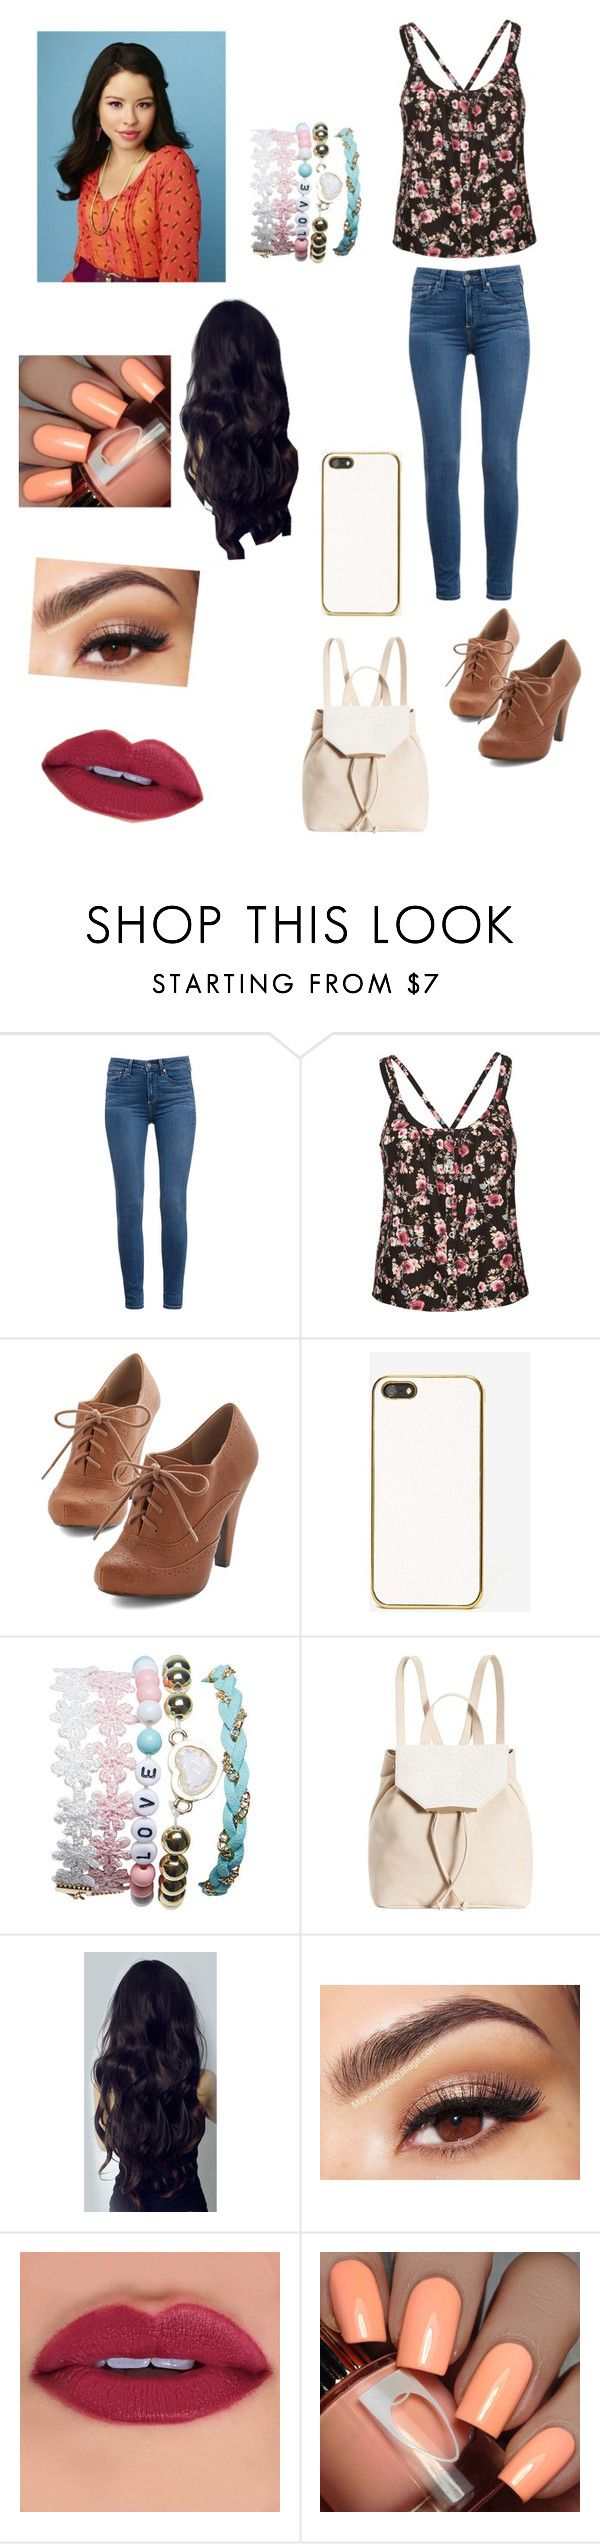 """""""• Mariana Foster •"""" by foreverteenwolf ❤ liked on Polyvore featuring Paige Denim, Mimi Chica, Skinnydip, Wet Seal, Danielle Nicole, Lancôme, TheFosters, cierraramirez and MarianaFoster"""